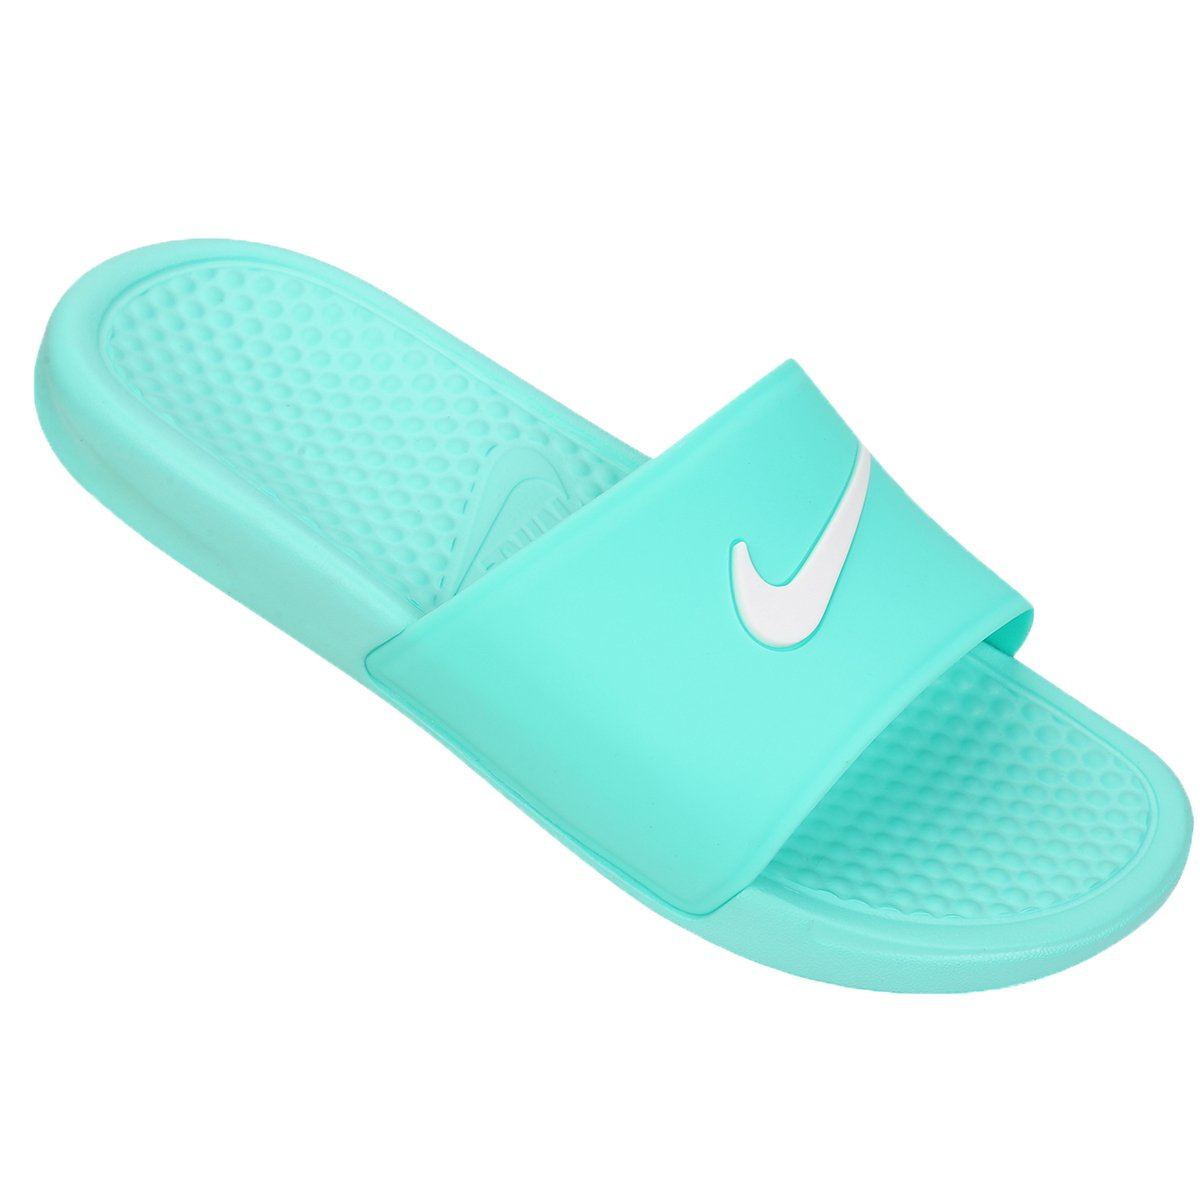 huge selection of 86b1b 31598 ... promo code adidas adi star 3g slide azul e branco chinelo nike benassi  shower slide azul